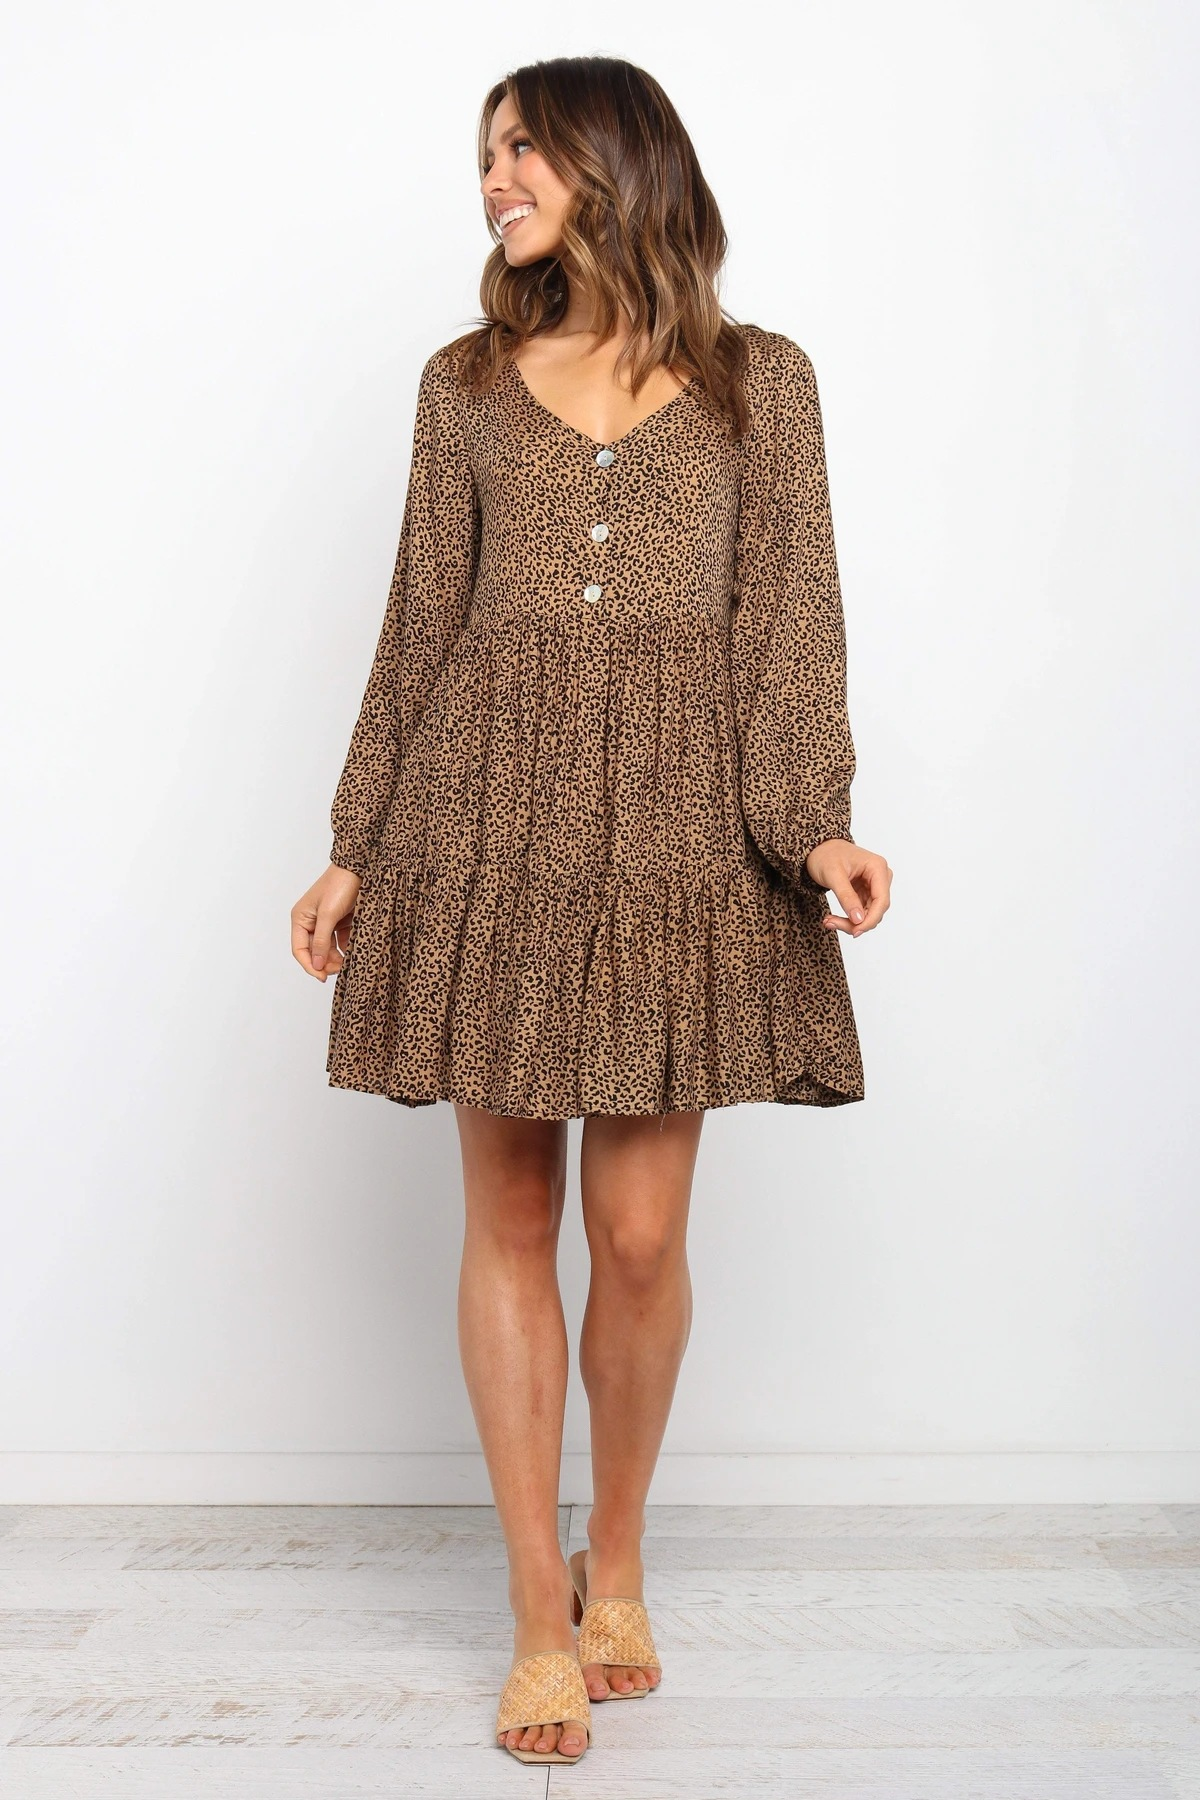 new V-neck long-sleeved button decoration loose leopard print dress NSYD3693